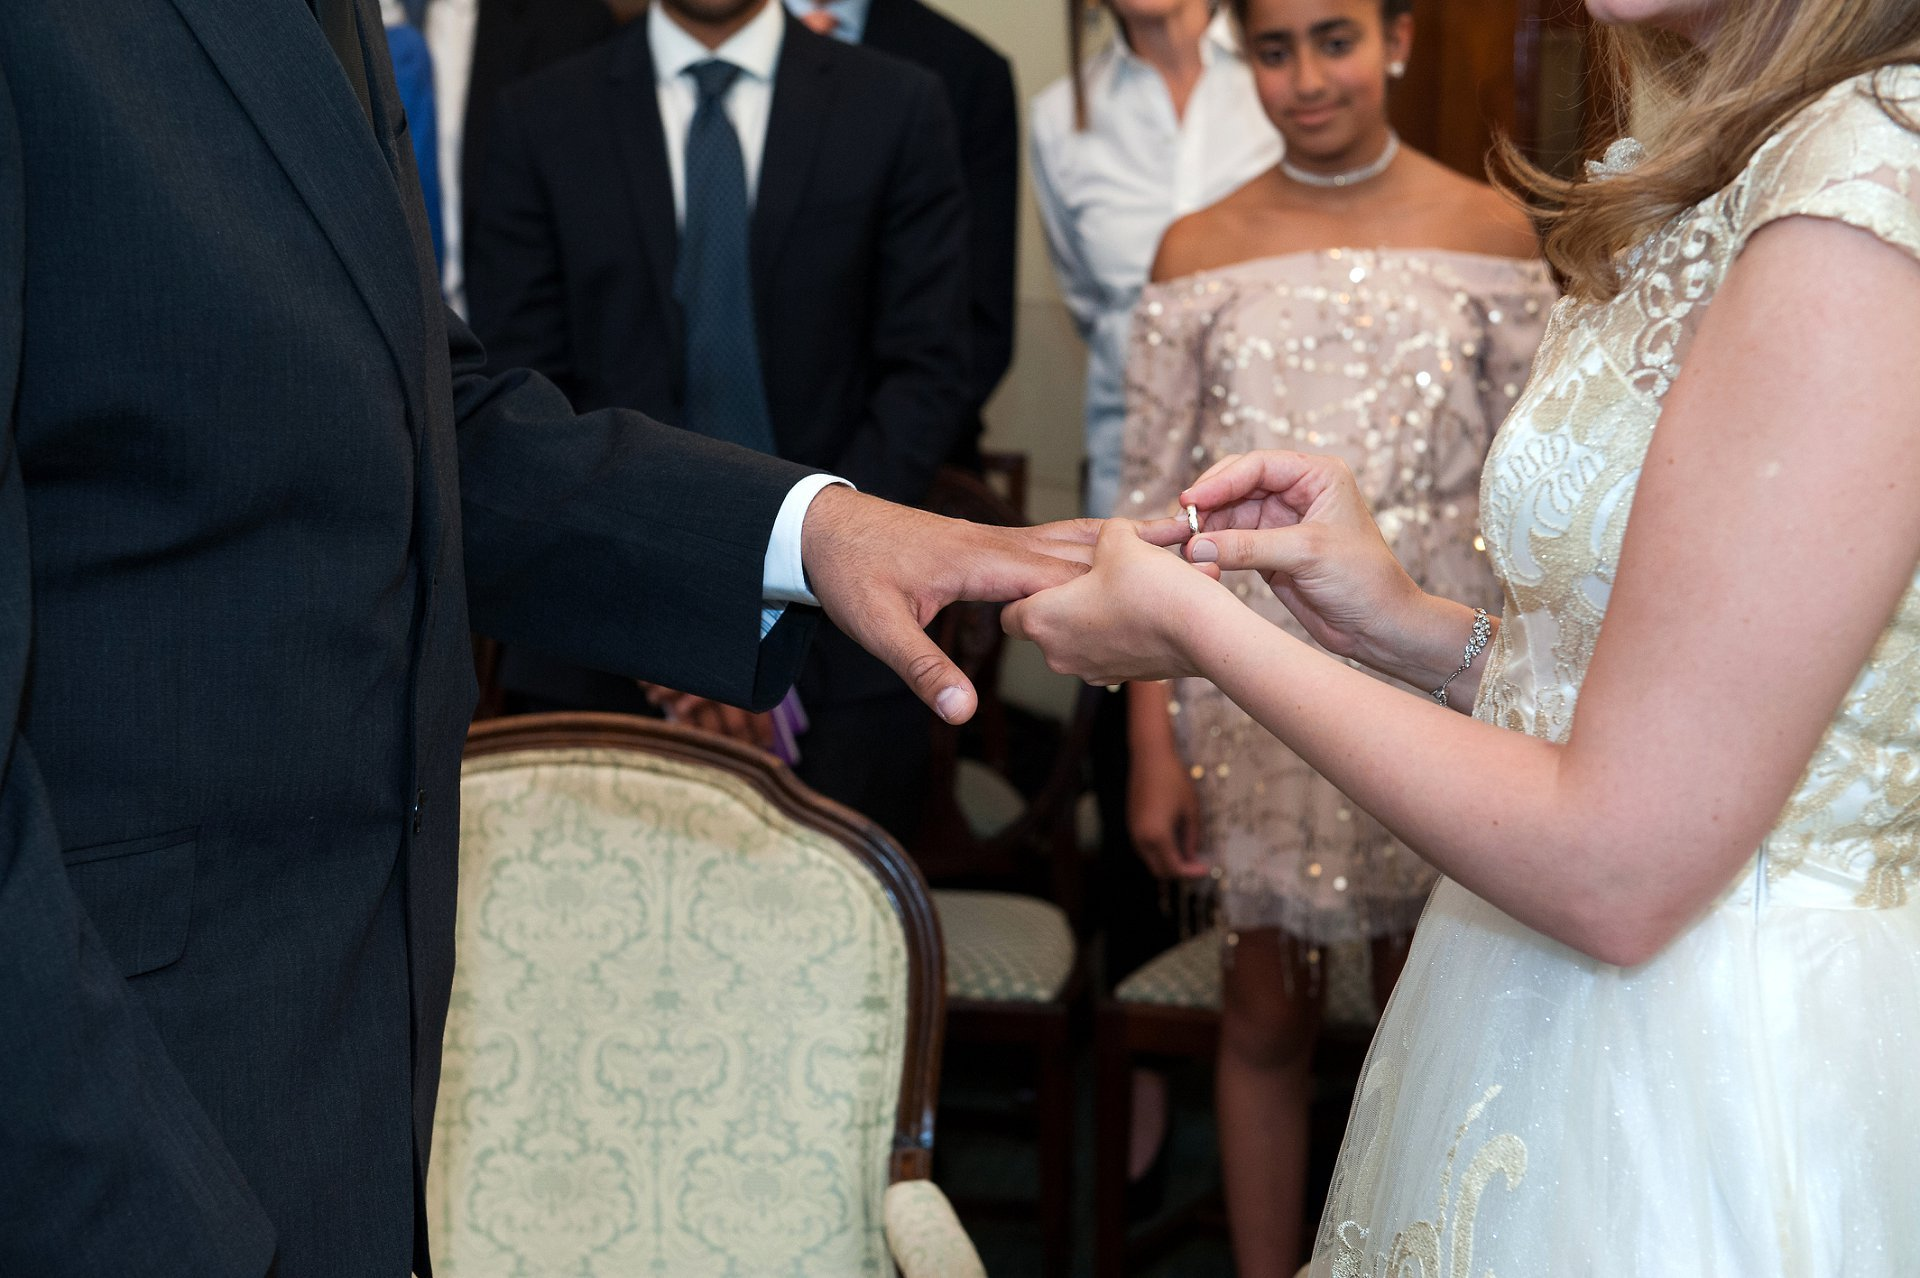 The bride exchanges rings with her husband-to-be in the Roseetti Room at Chelsea Registry Office